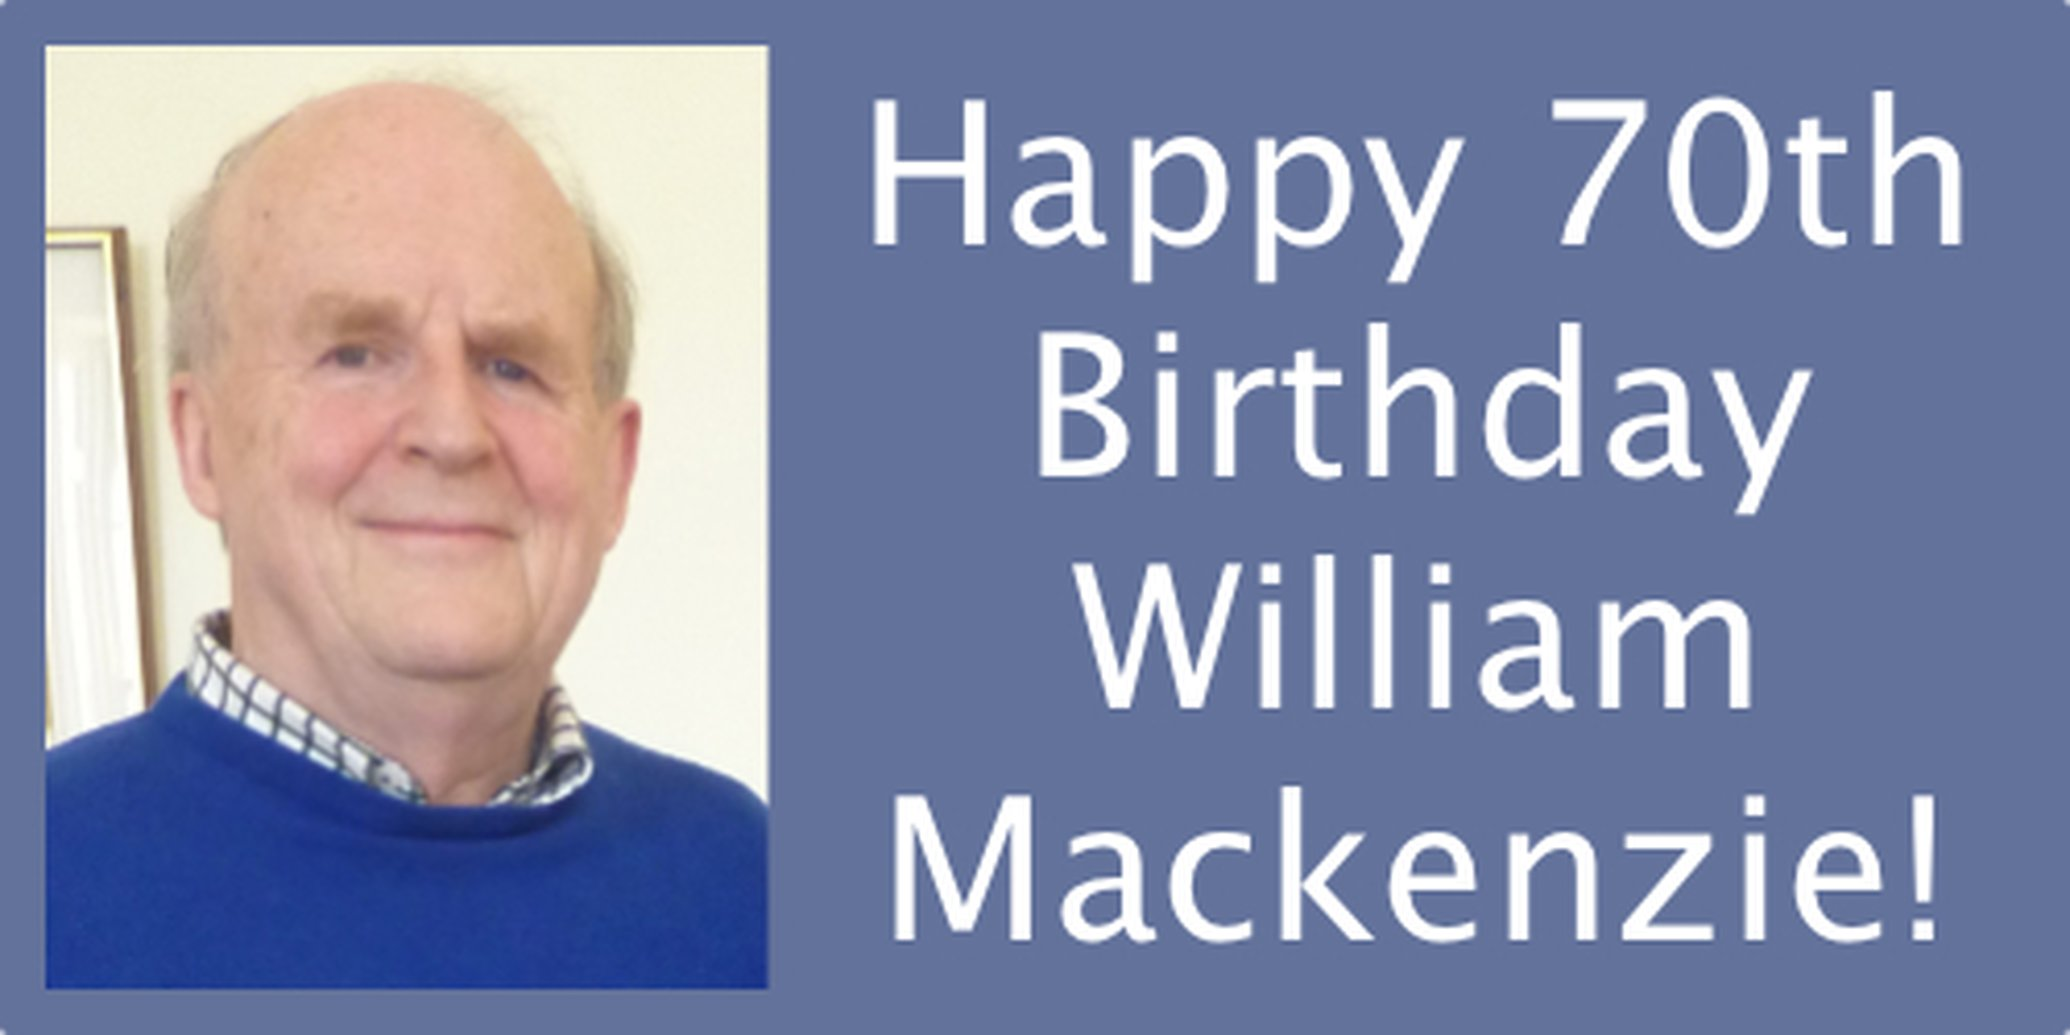 Happy 70th Birthday William Mackenzie!